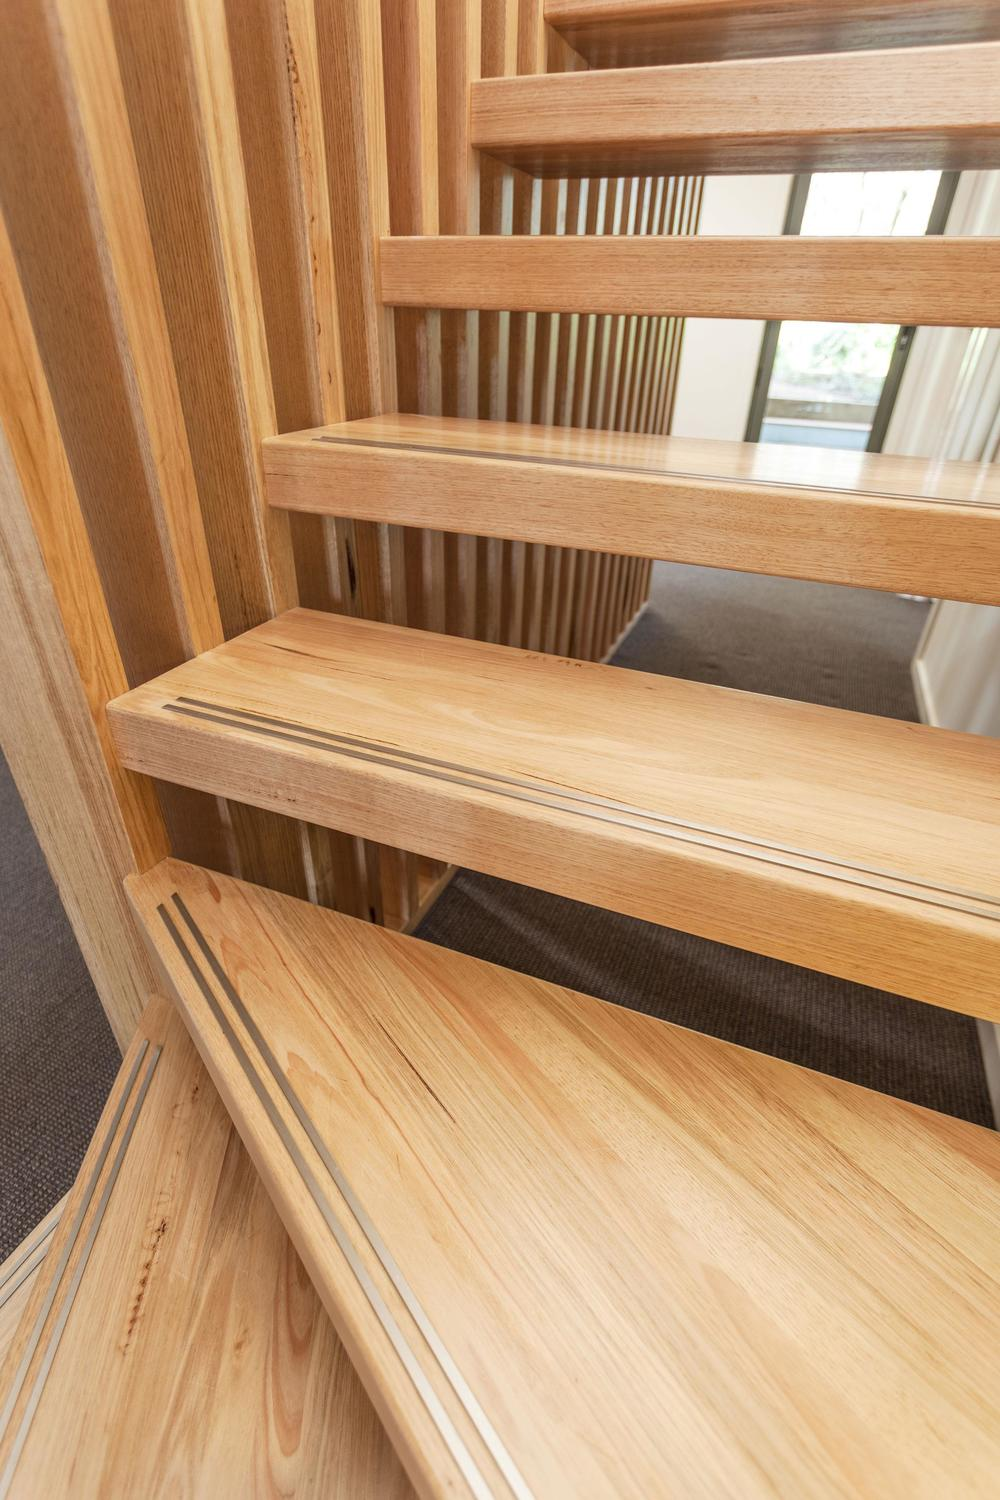 More intensive but just as decorative, metal or anti-slip inlays are available for embedding into your stair tread | Via Just Stairs